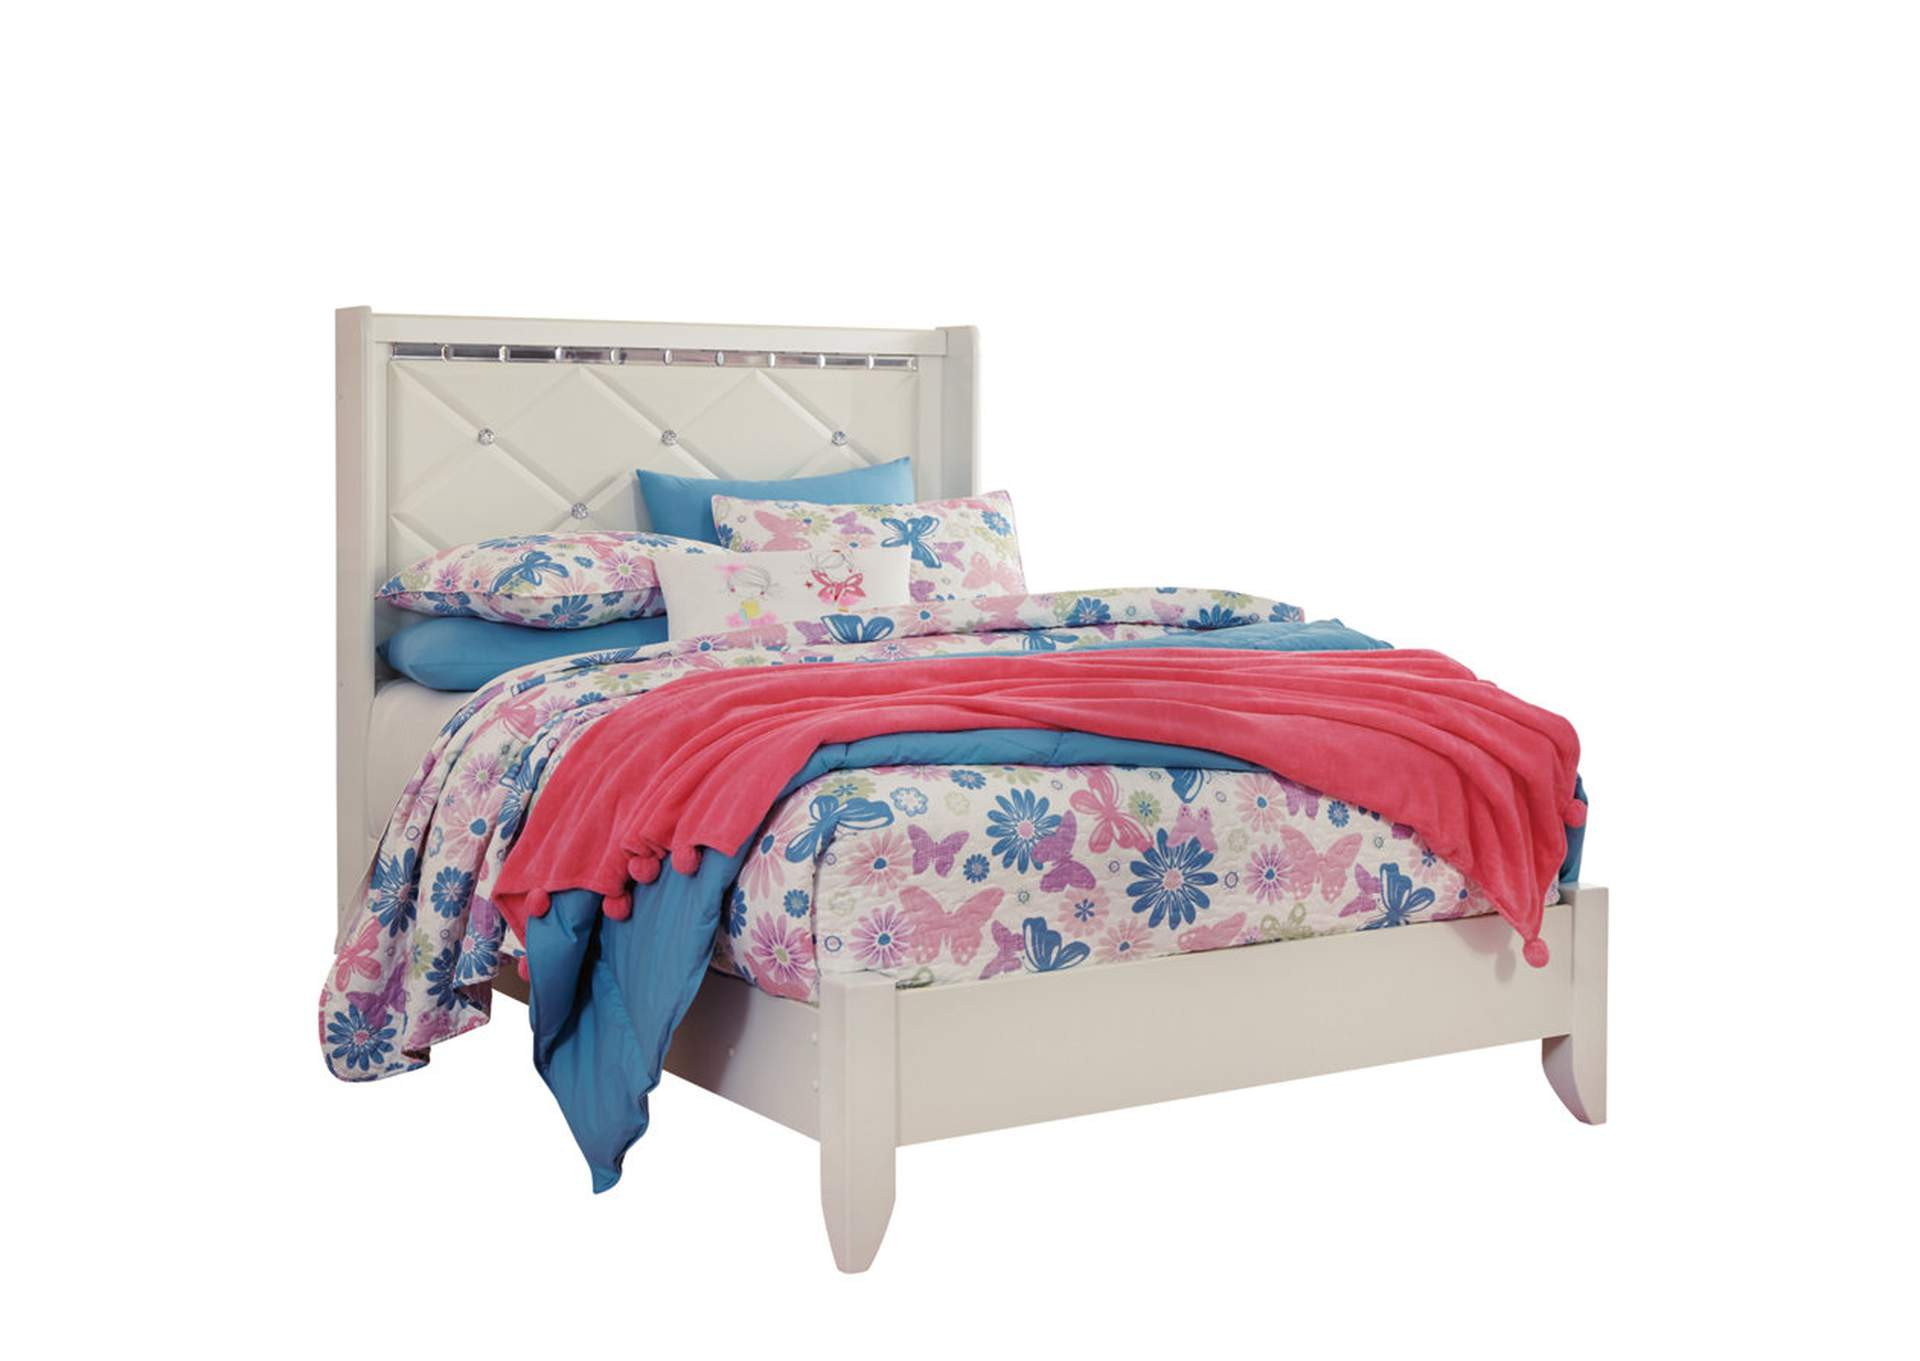 Dreamur Champagne Twin Panel Bed Best Buy Furniture And Mattress